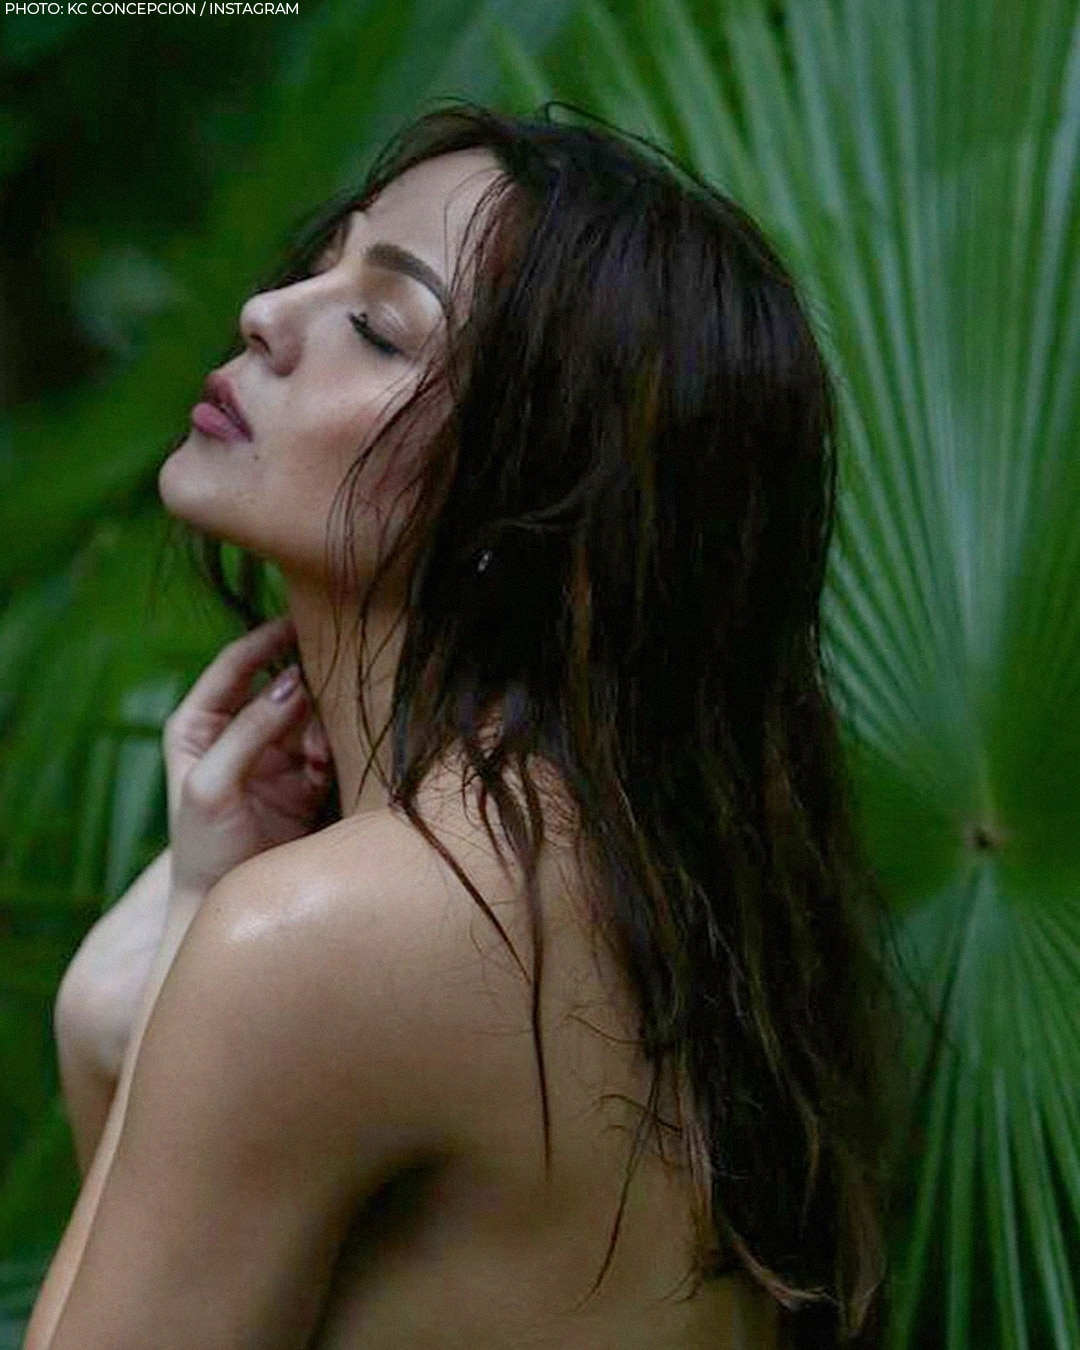 KC Concepcion's sizzling hot moments!